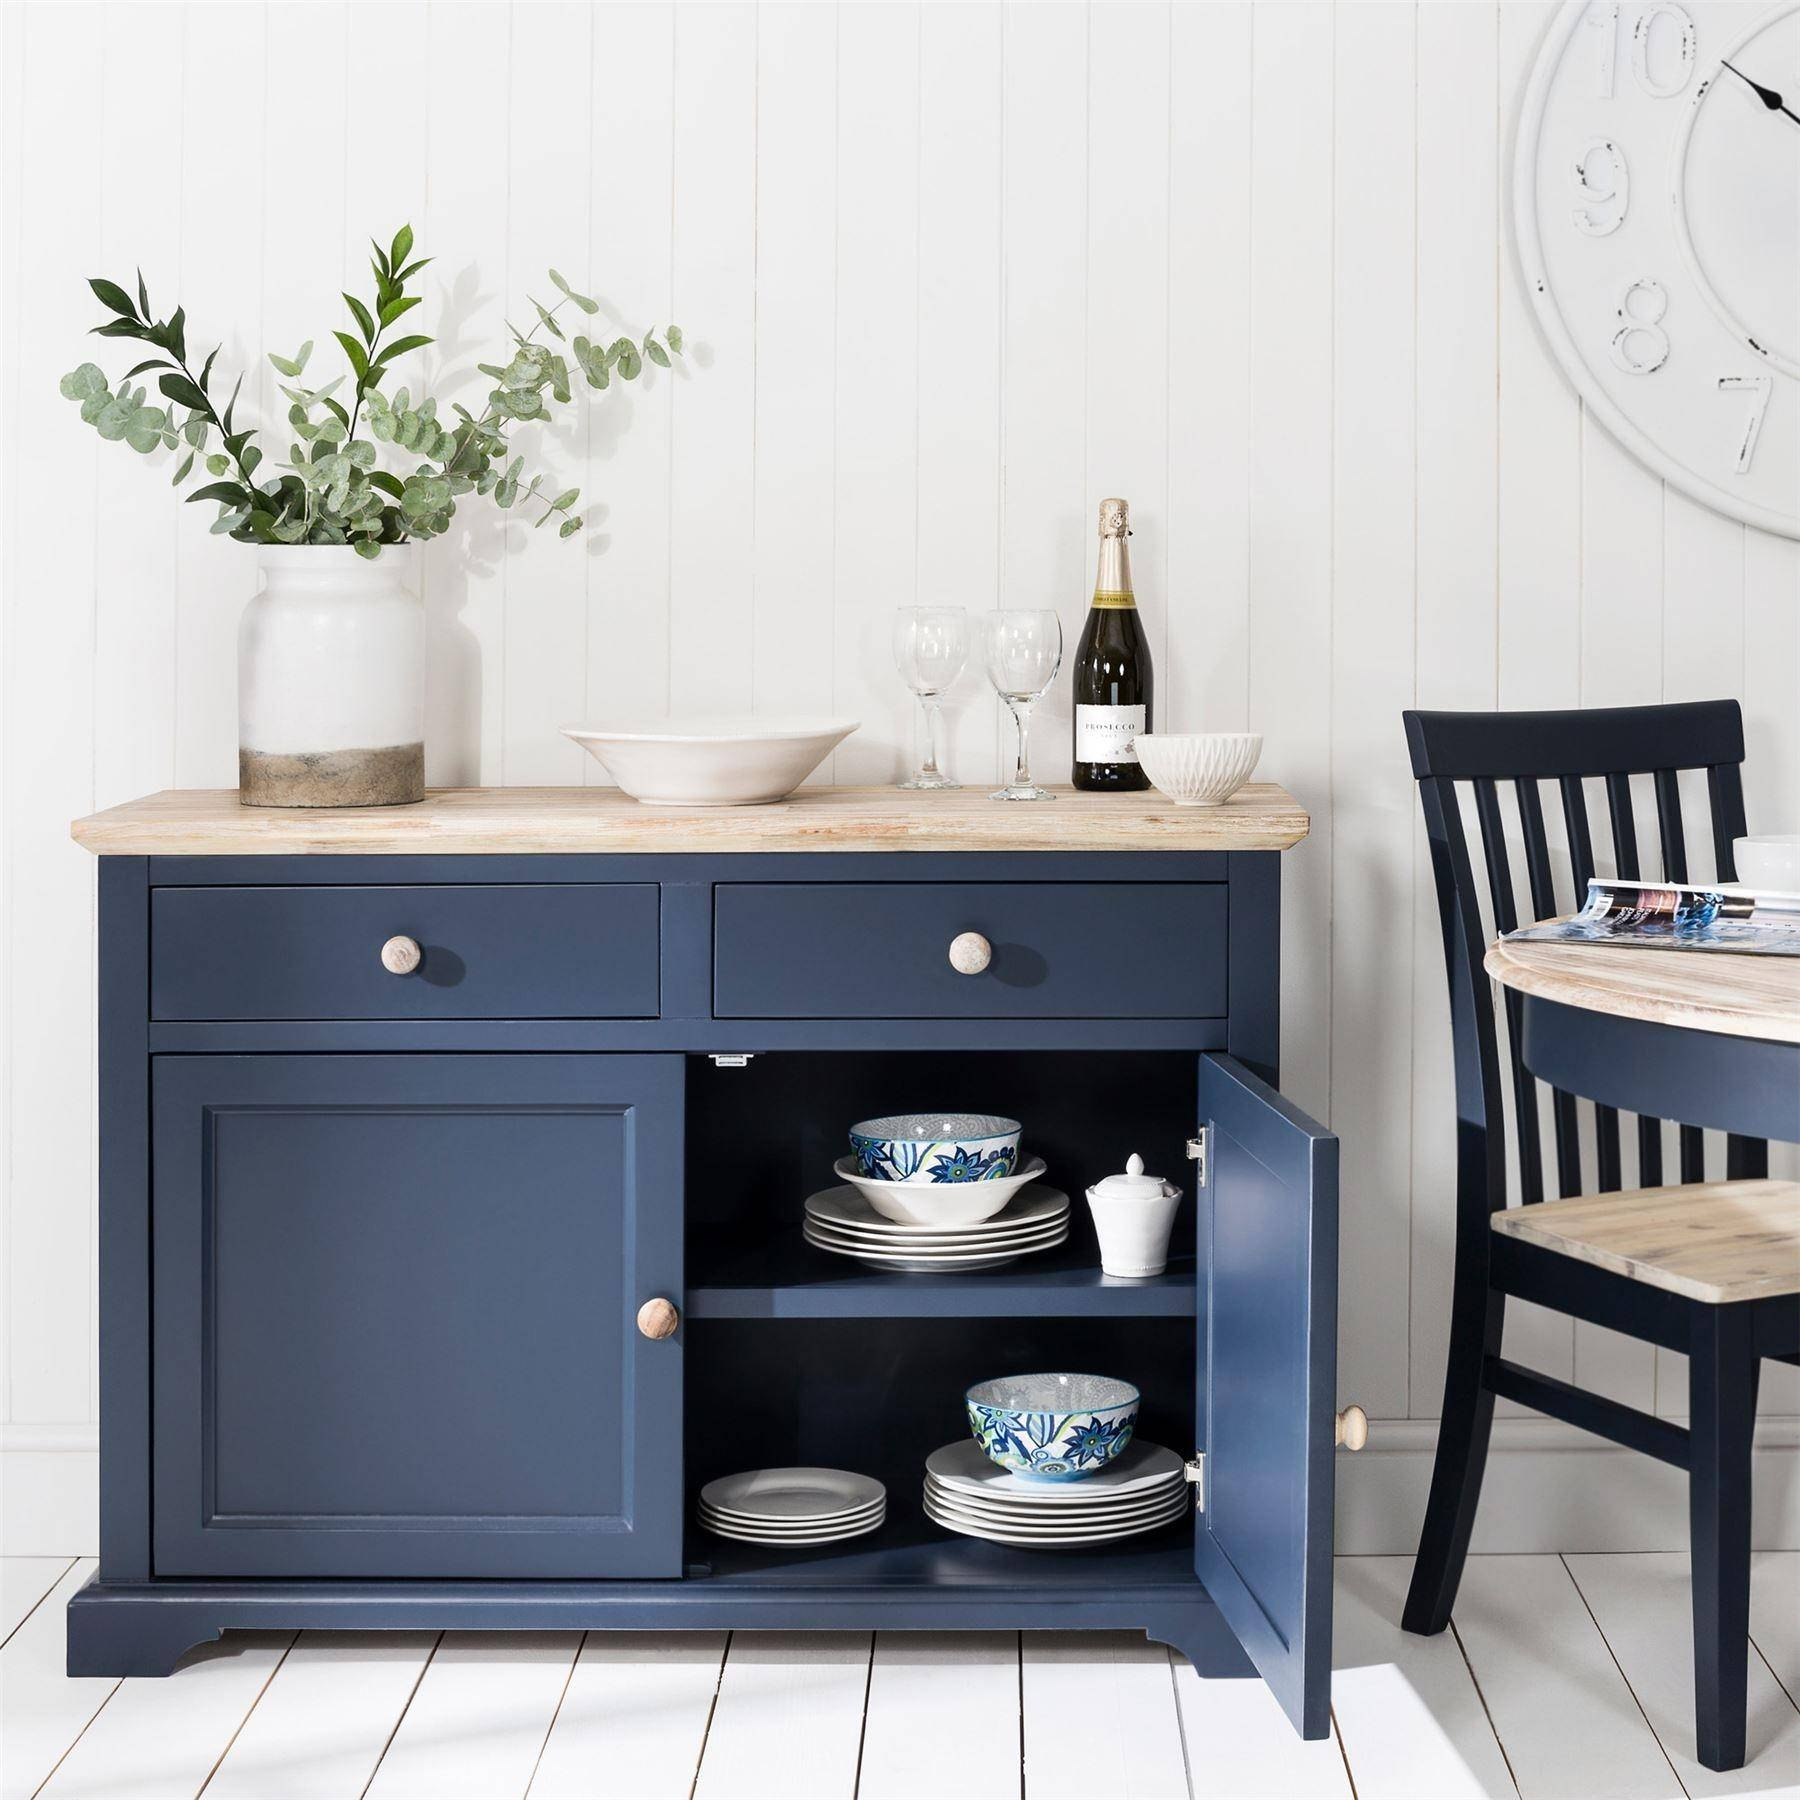 Sideboards | Bedroom Furniture Direct intended for Blue Sideboards (Image 10 of 15)